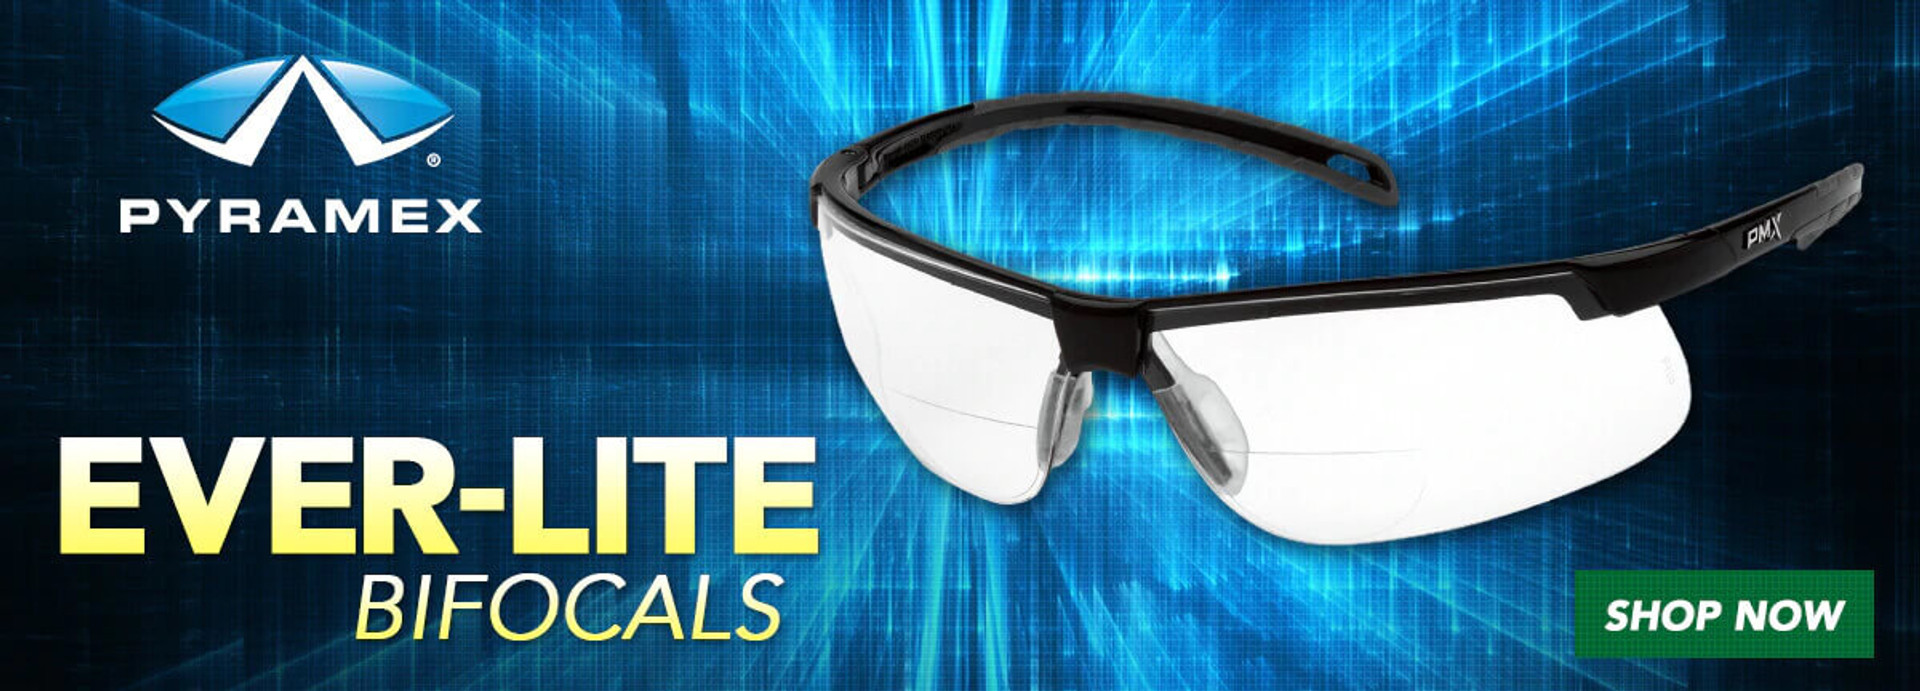 Pyramex Ever-Lite Readers Bifocal Safety Glasses